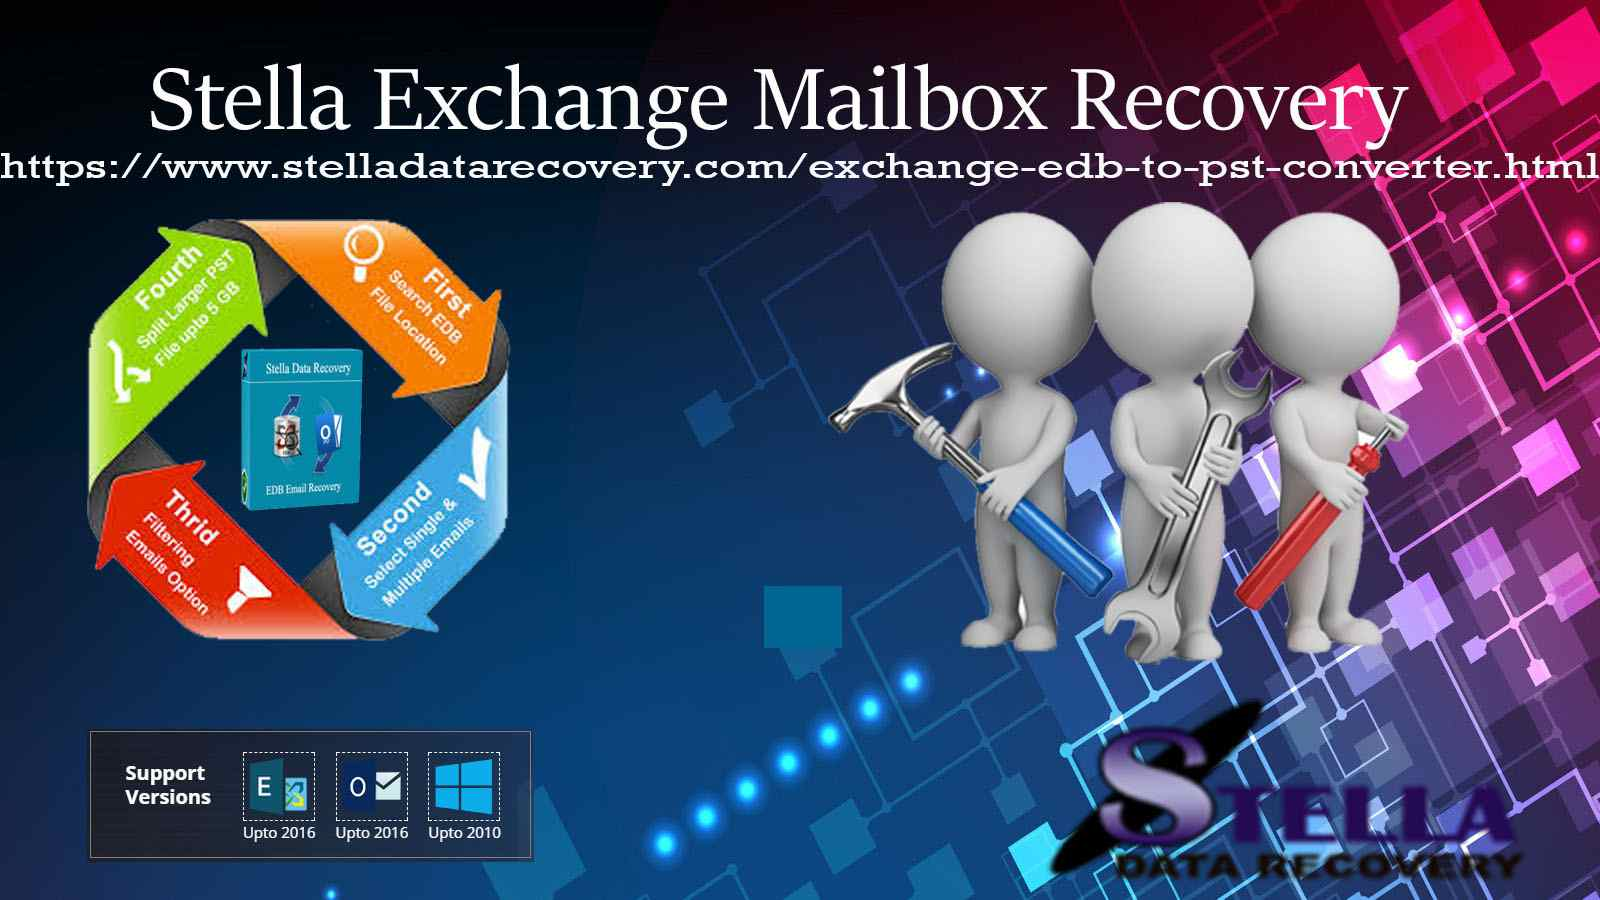 What exactly is Stella EDB to pst recovery software?